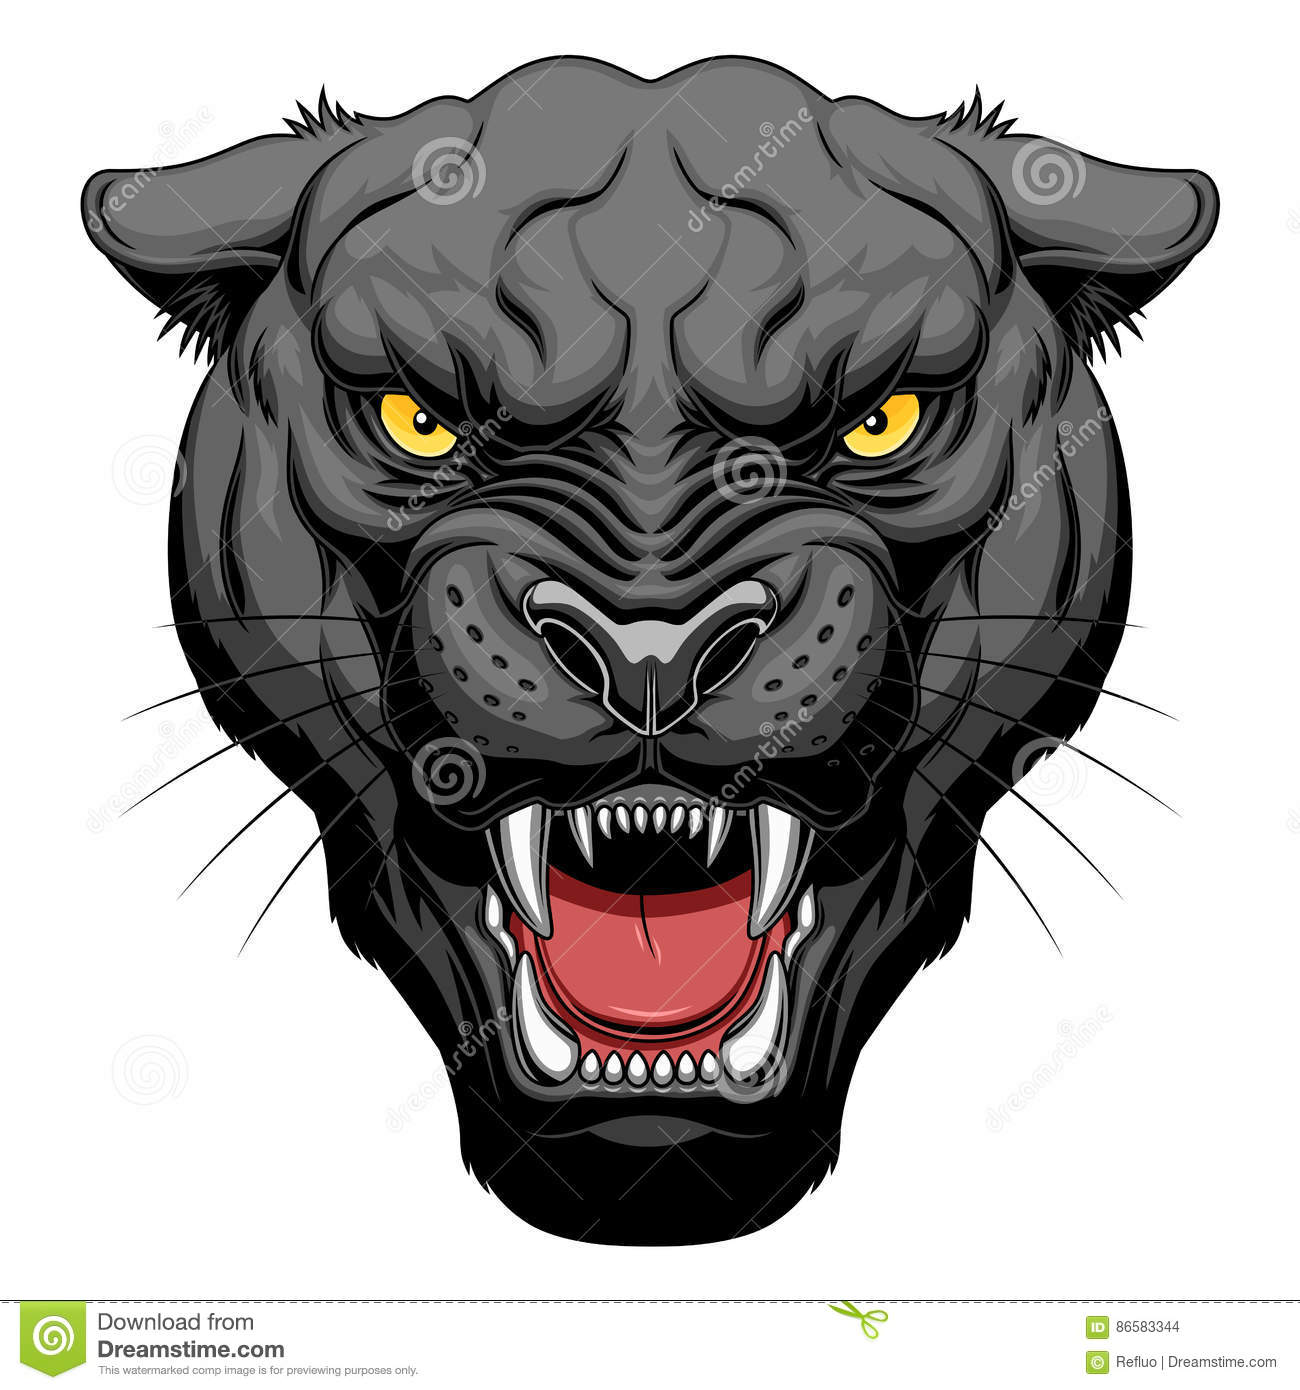 Black Jaguar Growling: Growling Panther Face Stock Vector. Illustration Of Scary